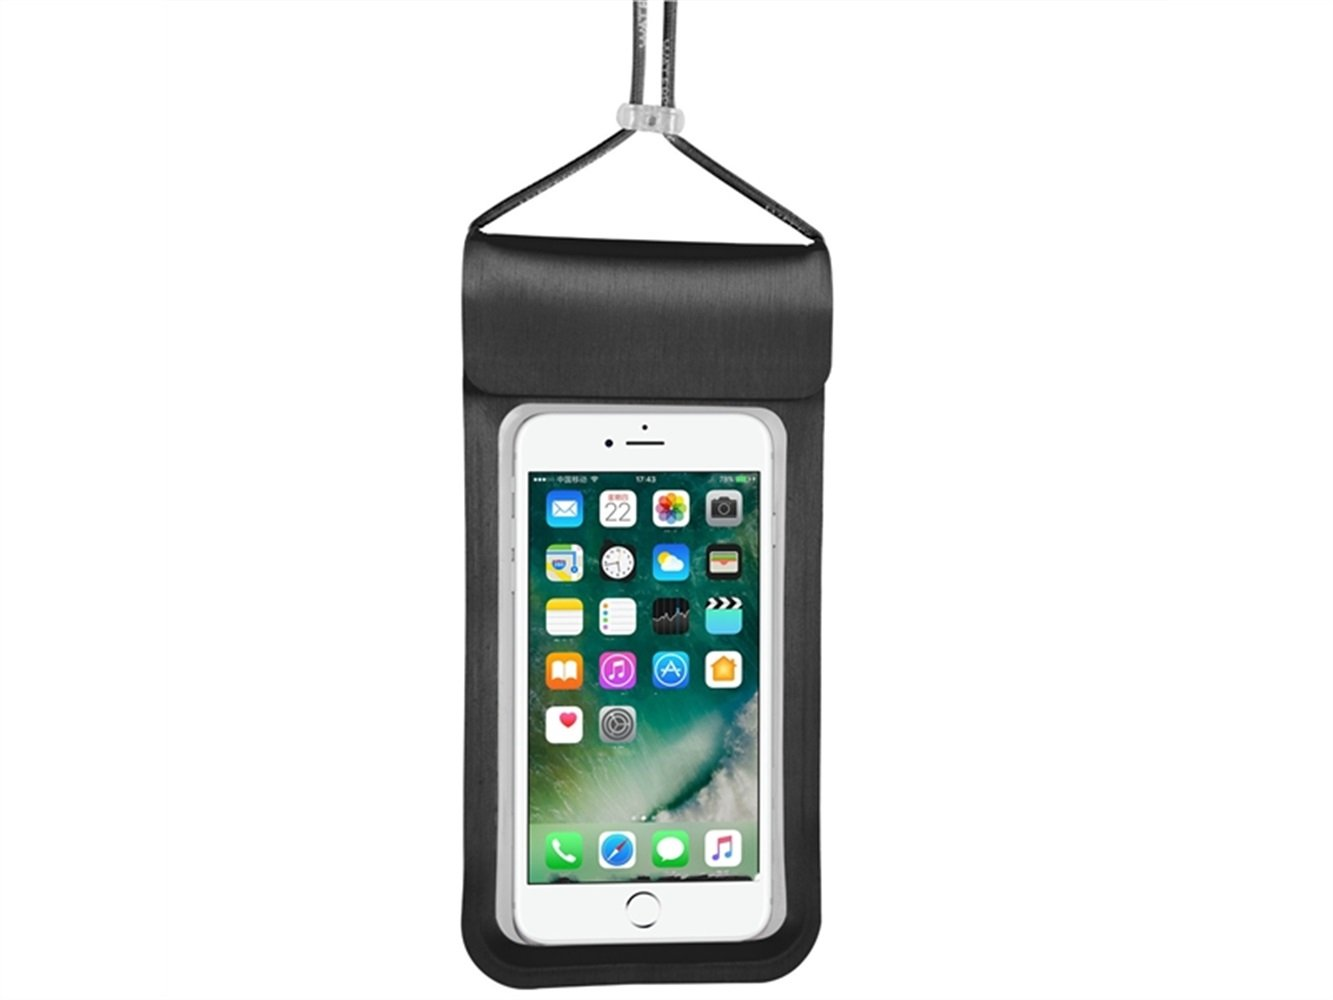 Wesource Good Protecter Portable Lanyard Waterproof Phone Bag Outdoor Beach Mobile Diving Bag for All Smartphones Up To 6.5 Inch(Black)